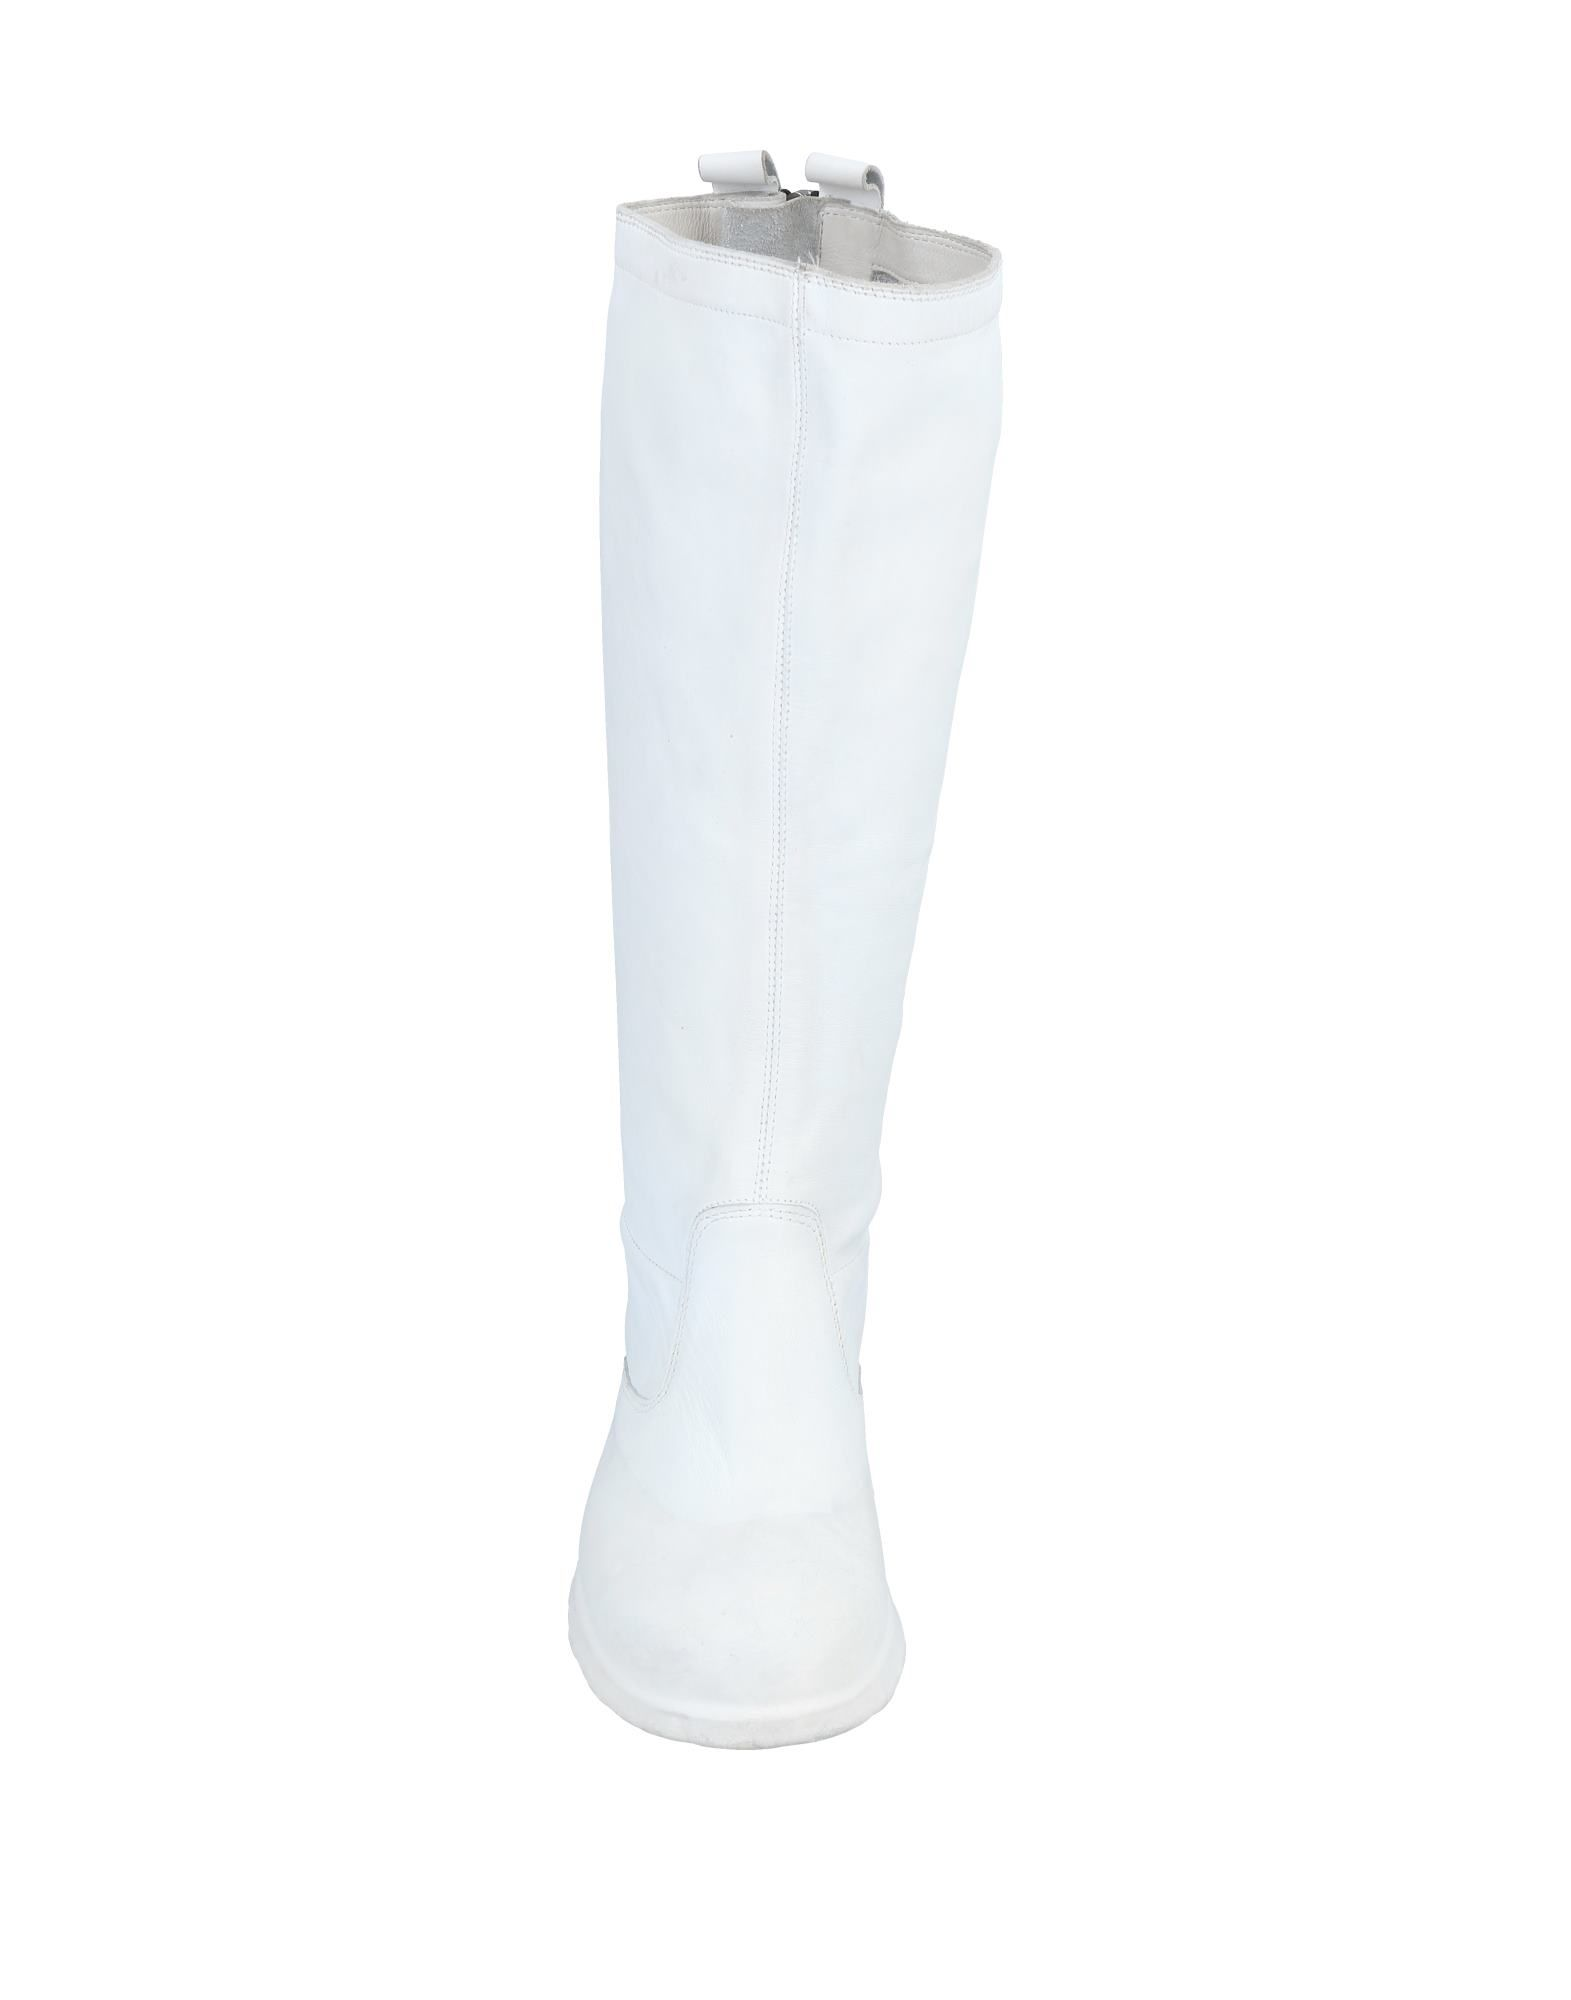 O.X.S. Rubber Soul Boots Boots Boots - Women O.X.S. Rubber Soul Boots online on  United Kingdom - 11574046KB 741872